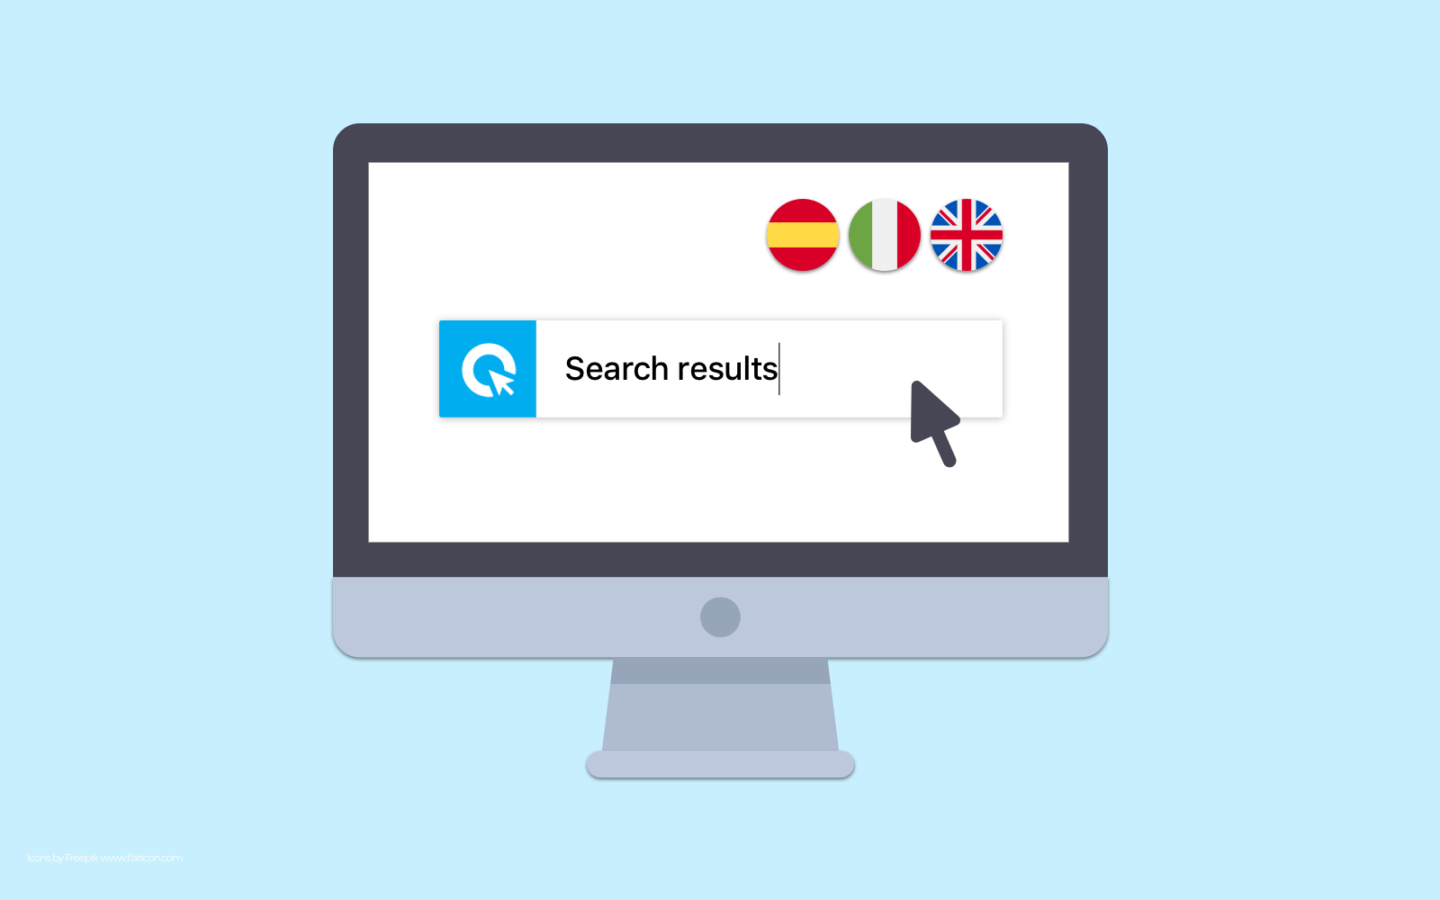 Cliqz quick search ES IT UK (Icons by Freepik www.flaticon.com)